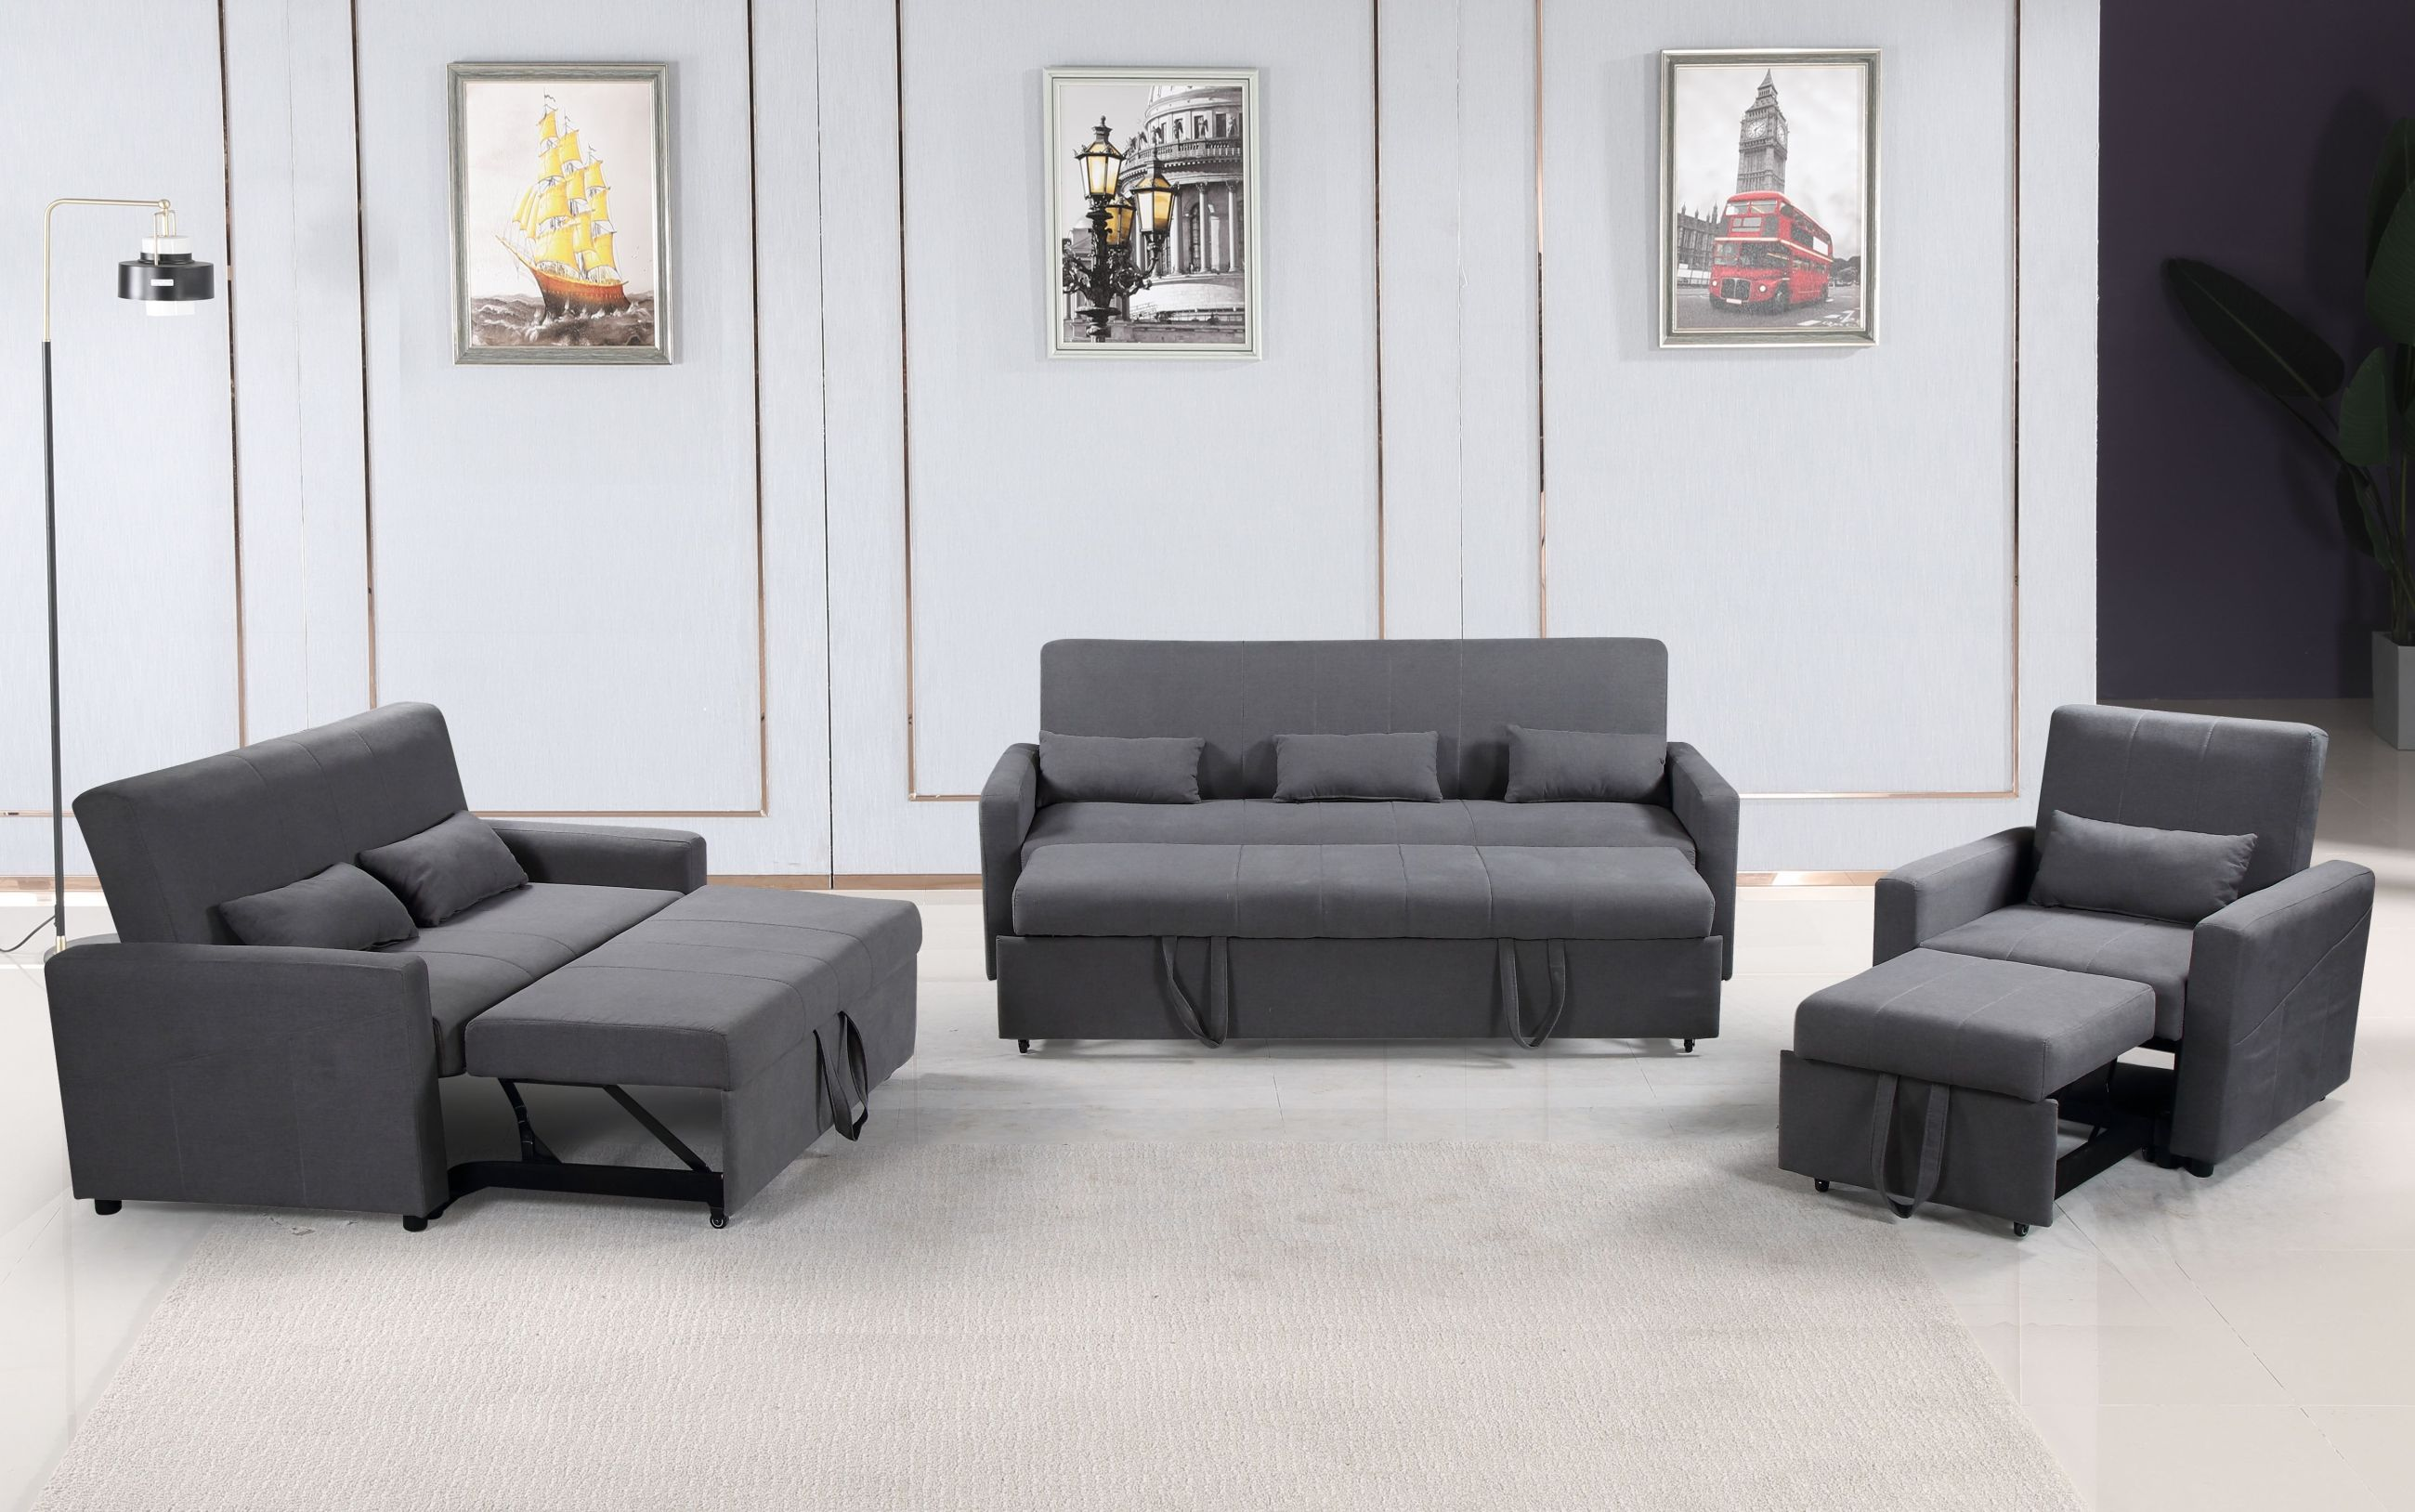 Excellent Transformer 3 Pc Convertible Sofa Bed Set Grey Caraccident5 Cool Chair Designs And Ideas Caraccident5Info